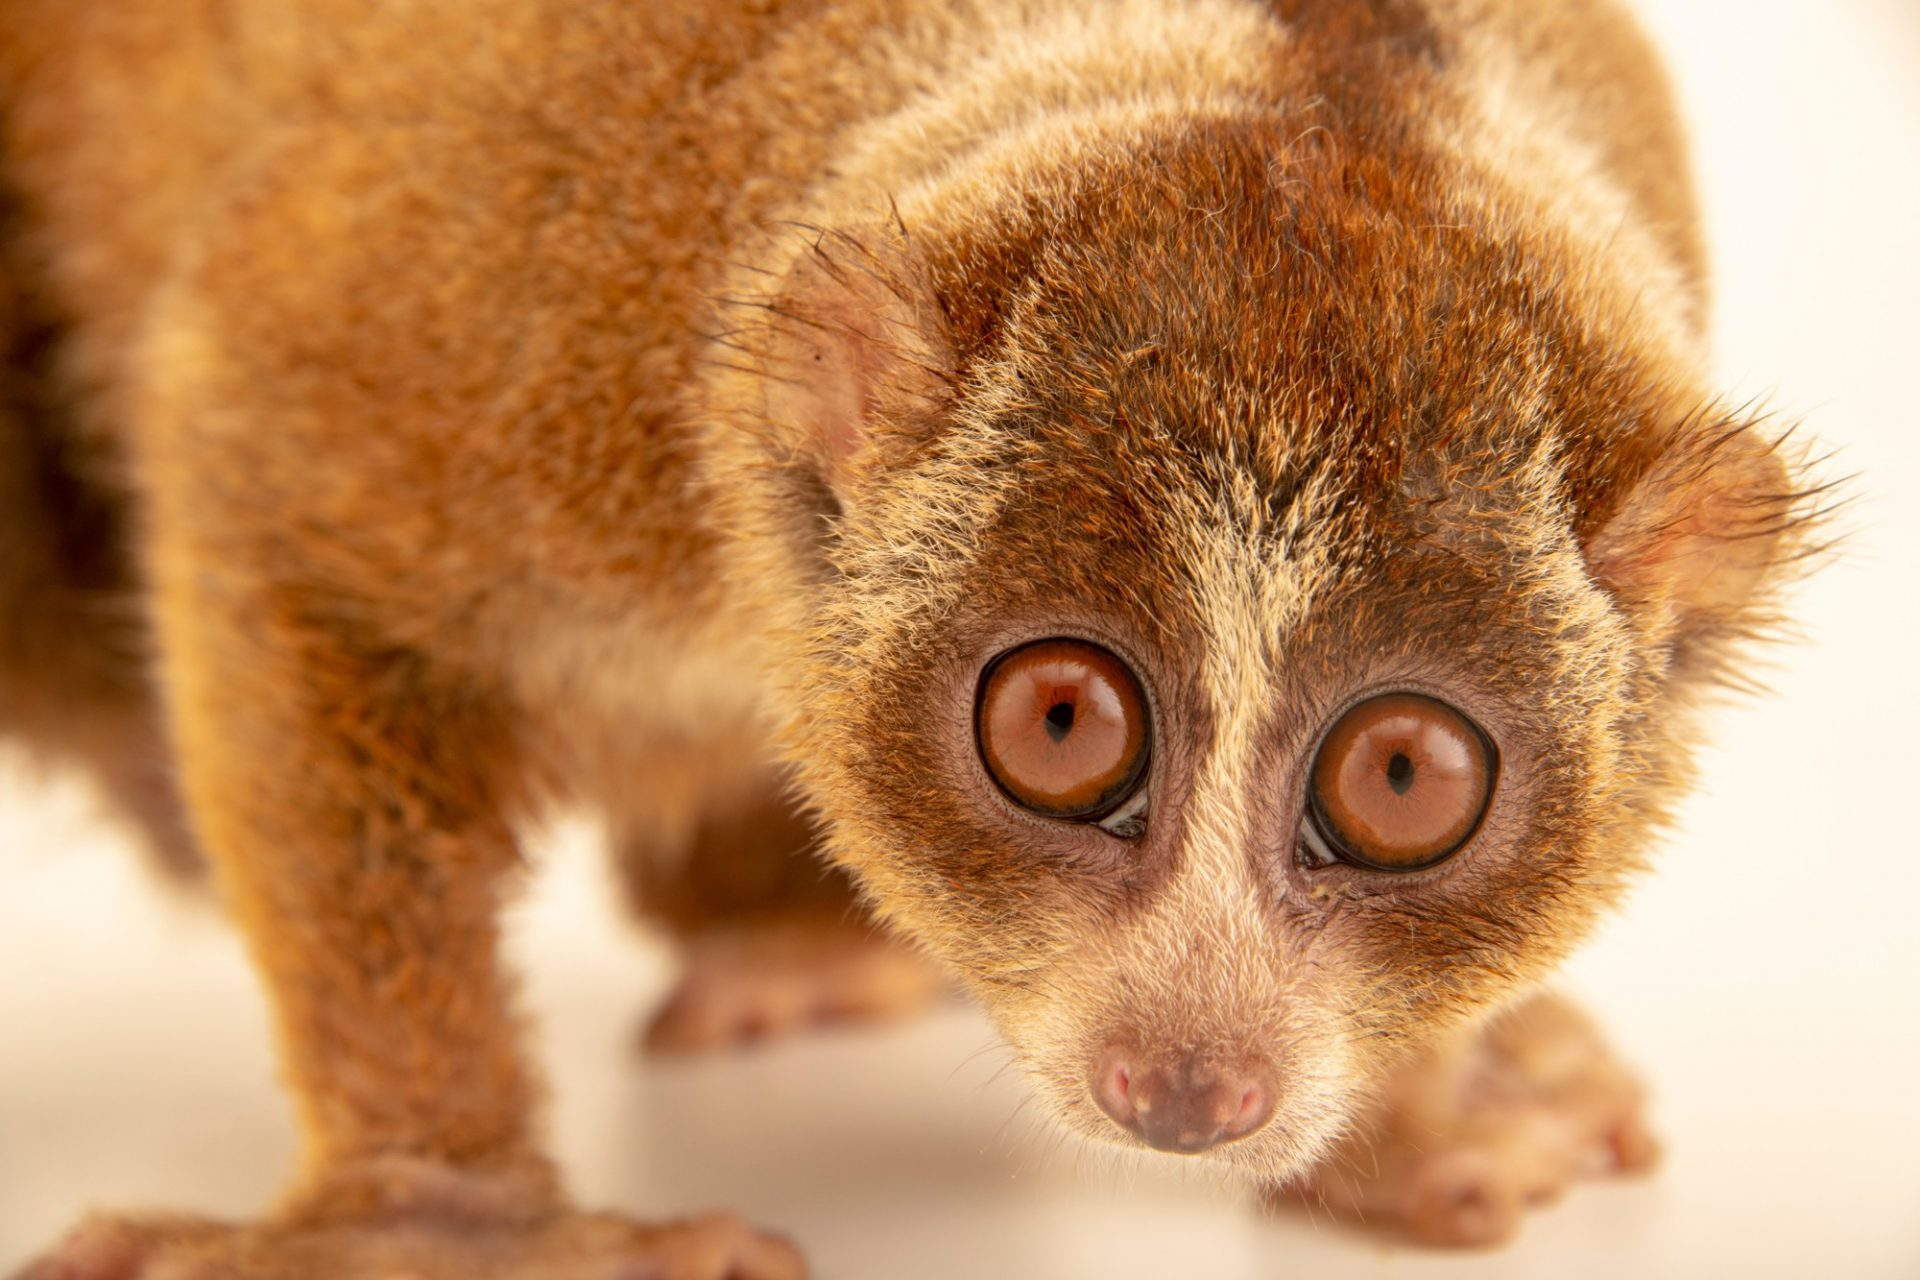 Photo: A Sumatran slow loris (Nycticebus coucang) at Jakarta Natural Resource Conservation Center in Indonesia.